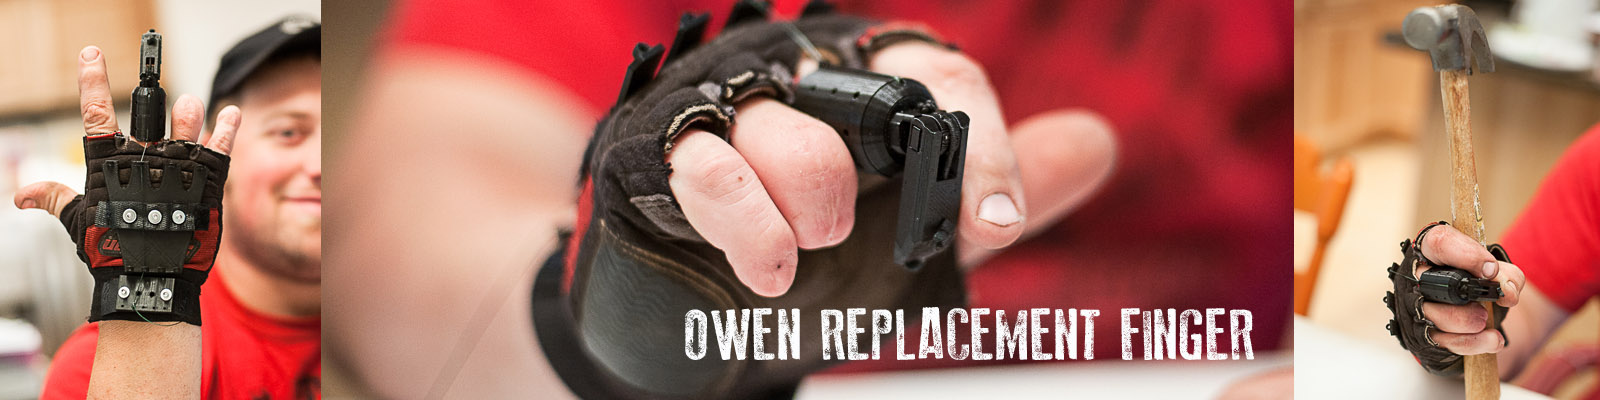 E-NABLE Slovakia - The Owen Replacement Finger